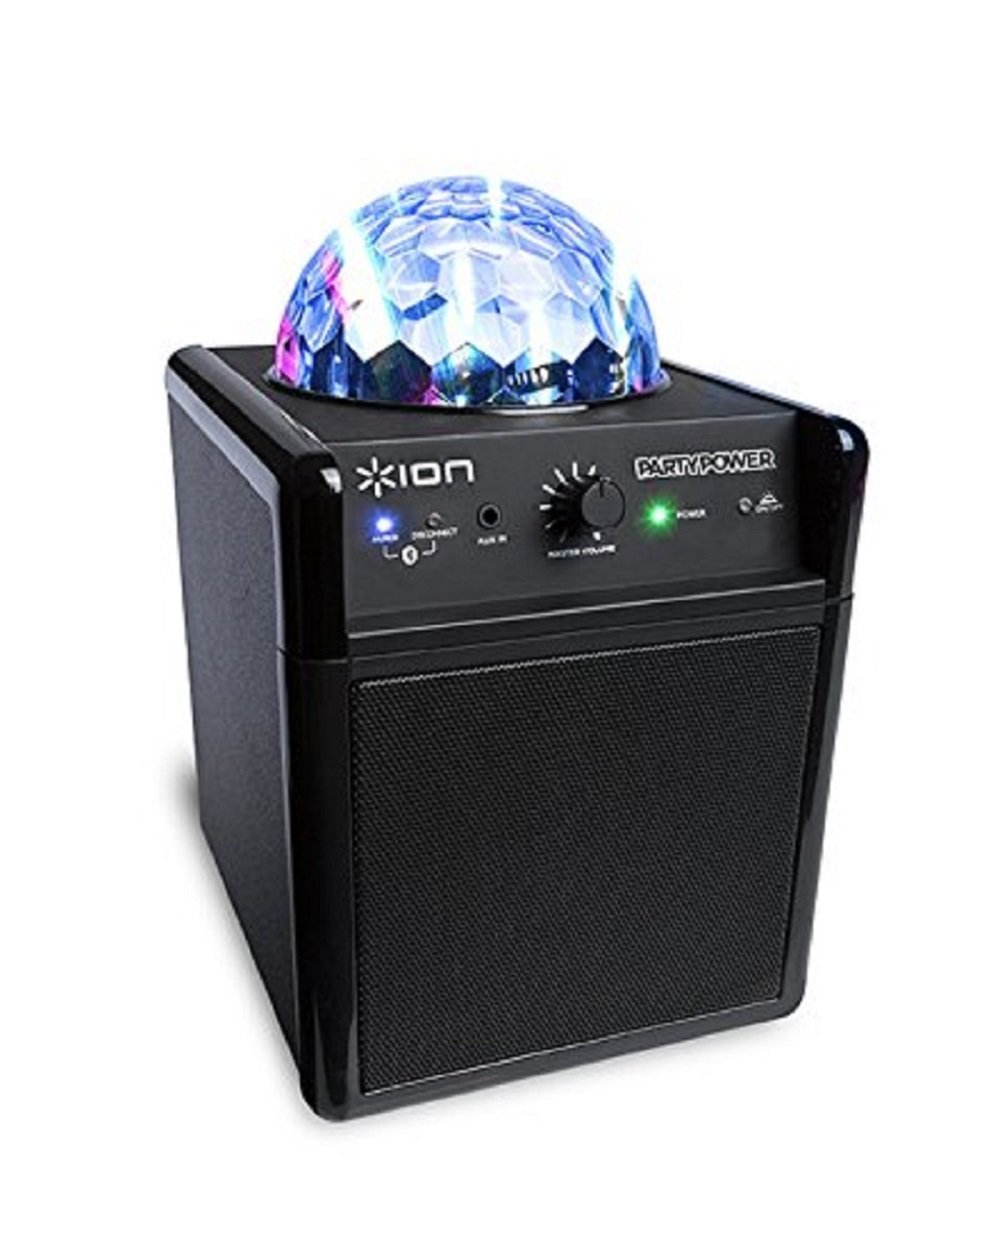 ION Audio Party Power | Portable Bluetooth Speaker System with Party Lights, Rechargeable Battery, and Auxiliary Input (10W) (Certified Refurbished)